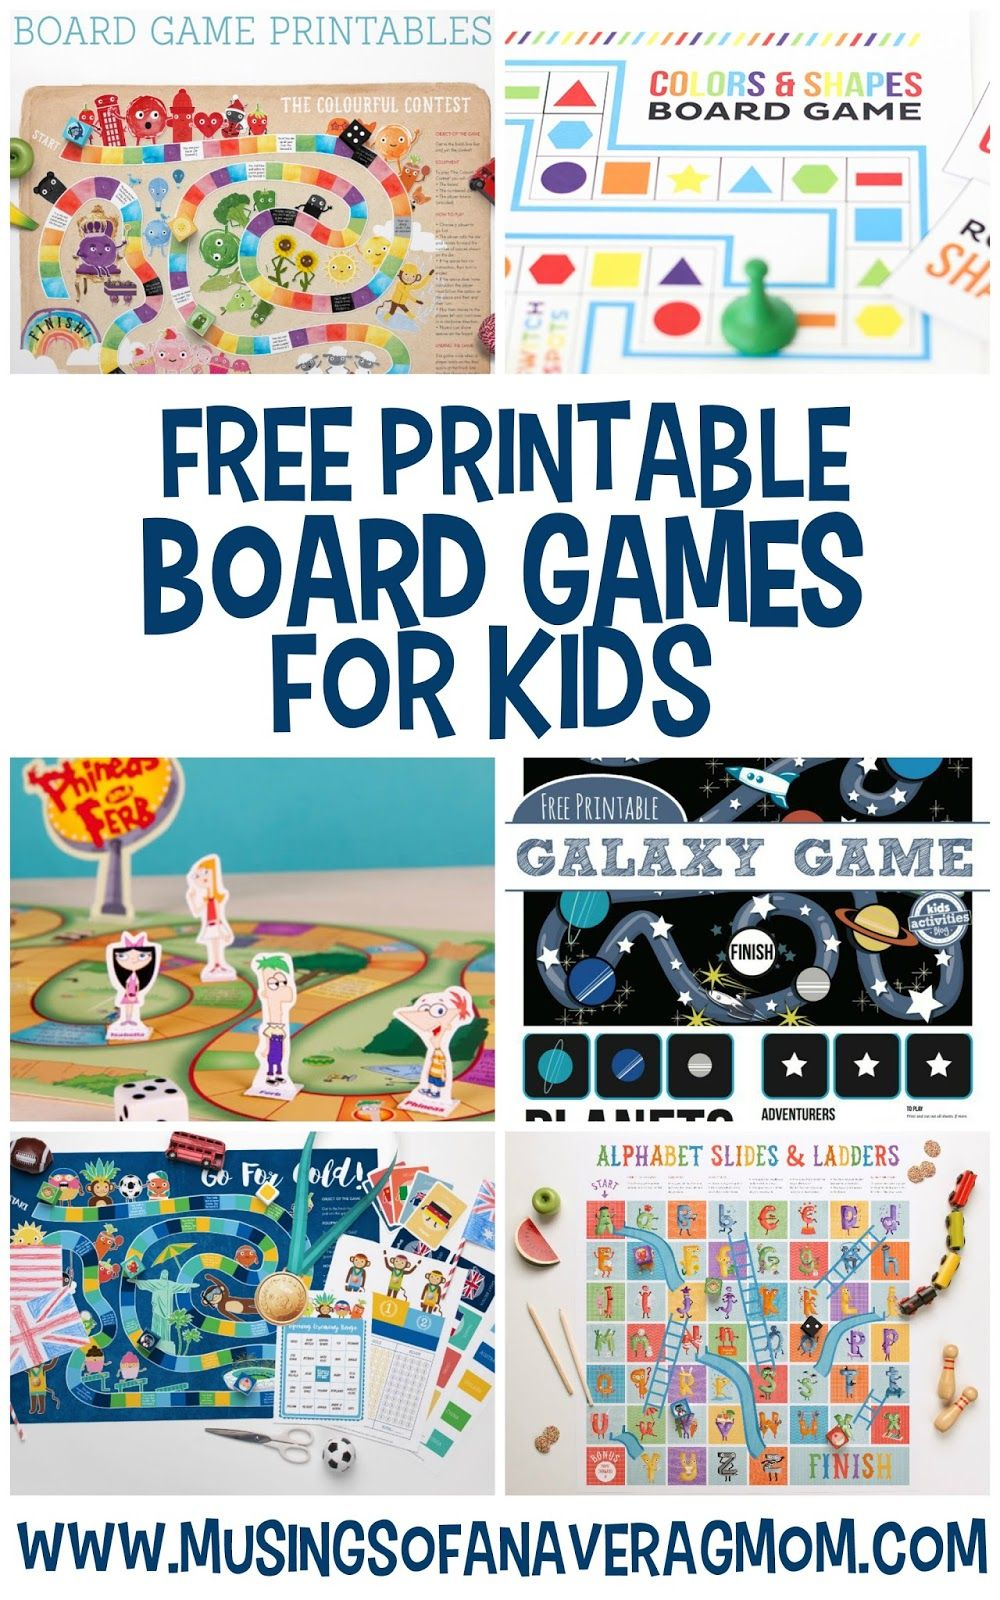 graphic regarding Free Printable Games for Kids titled No cost printable board video games Printables For Young children